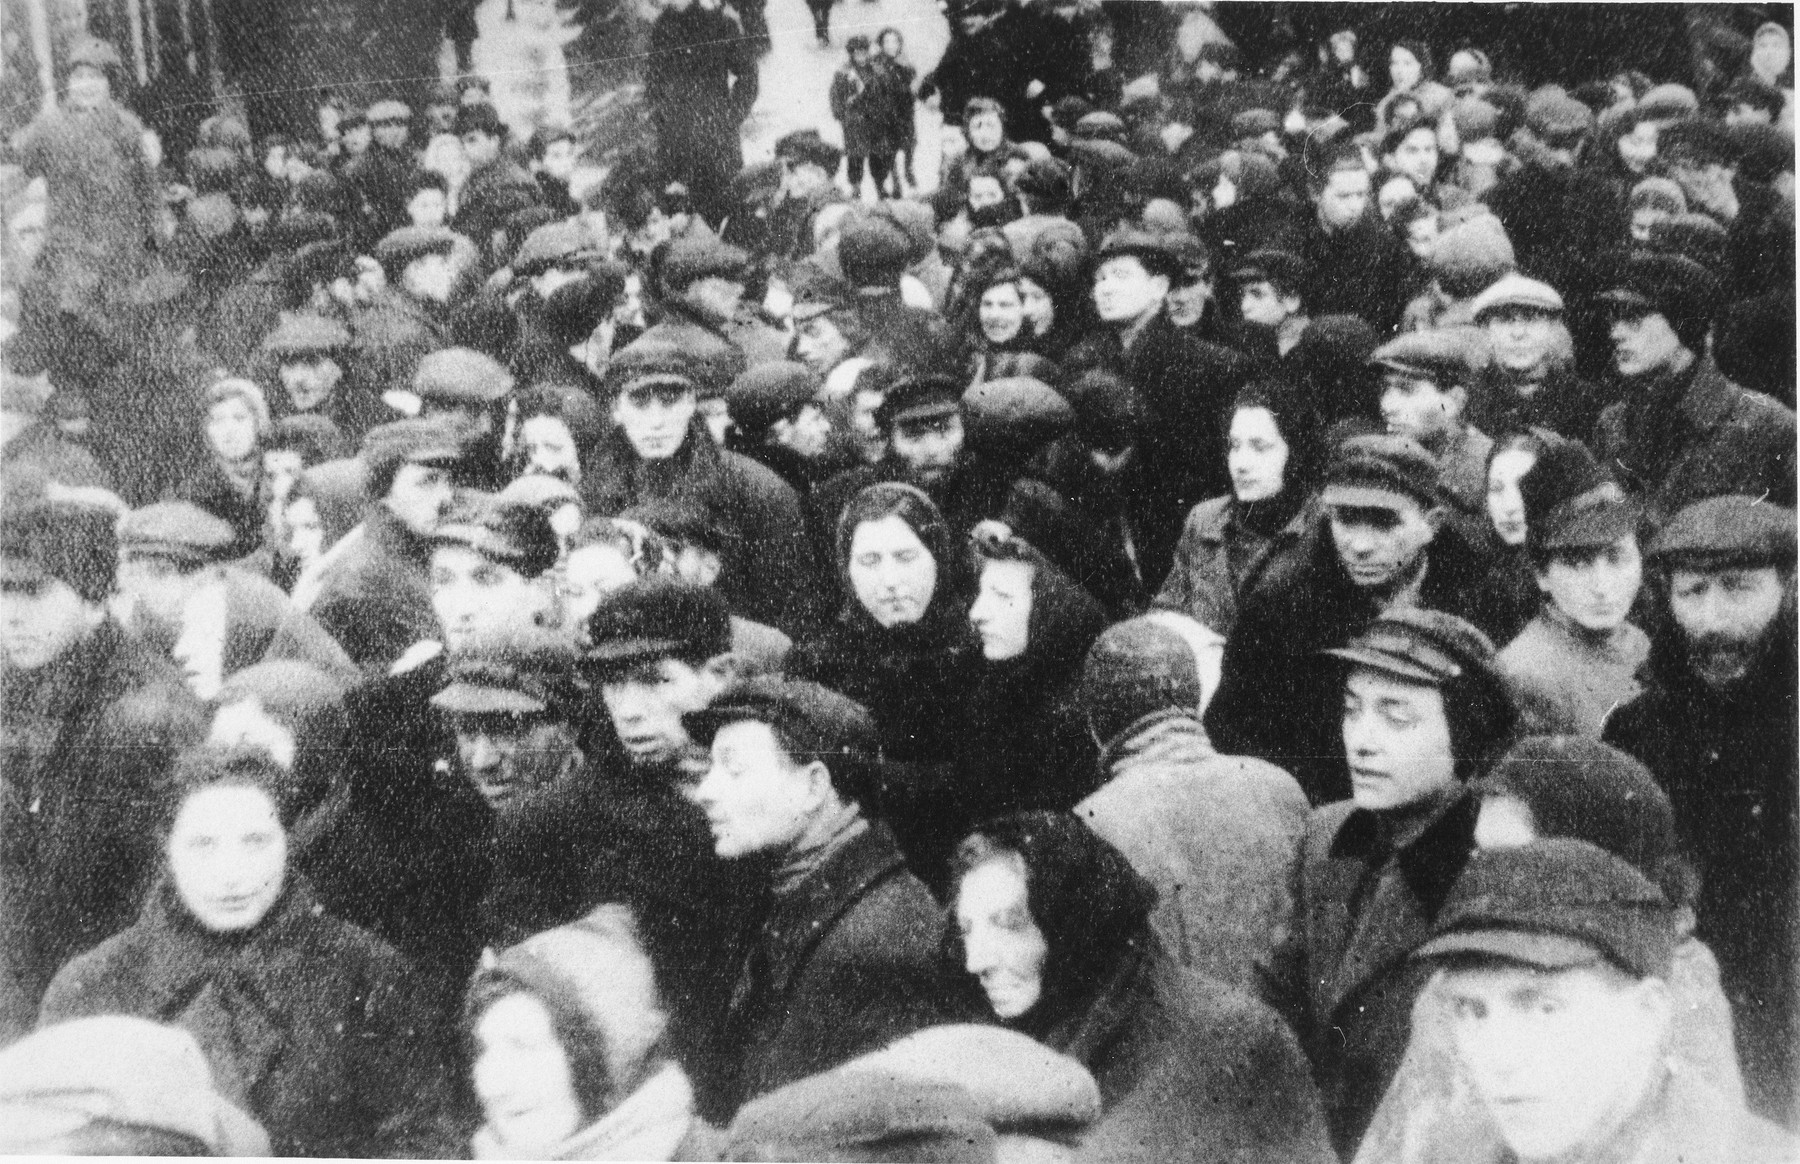 Jewish residents are crowded in a public square of an unidentified ghetto.